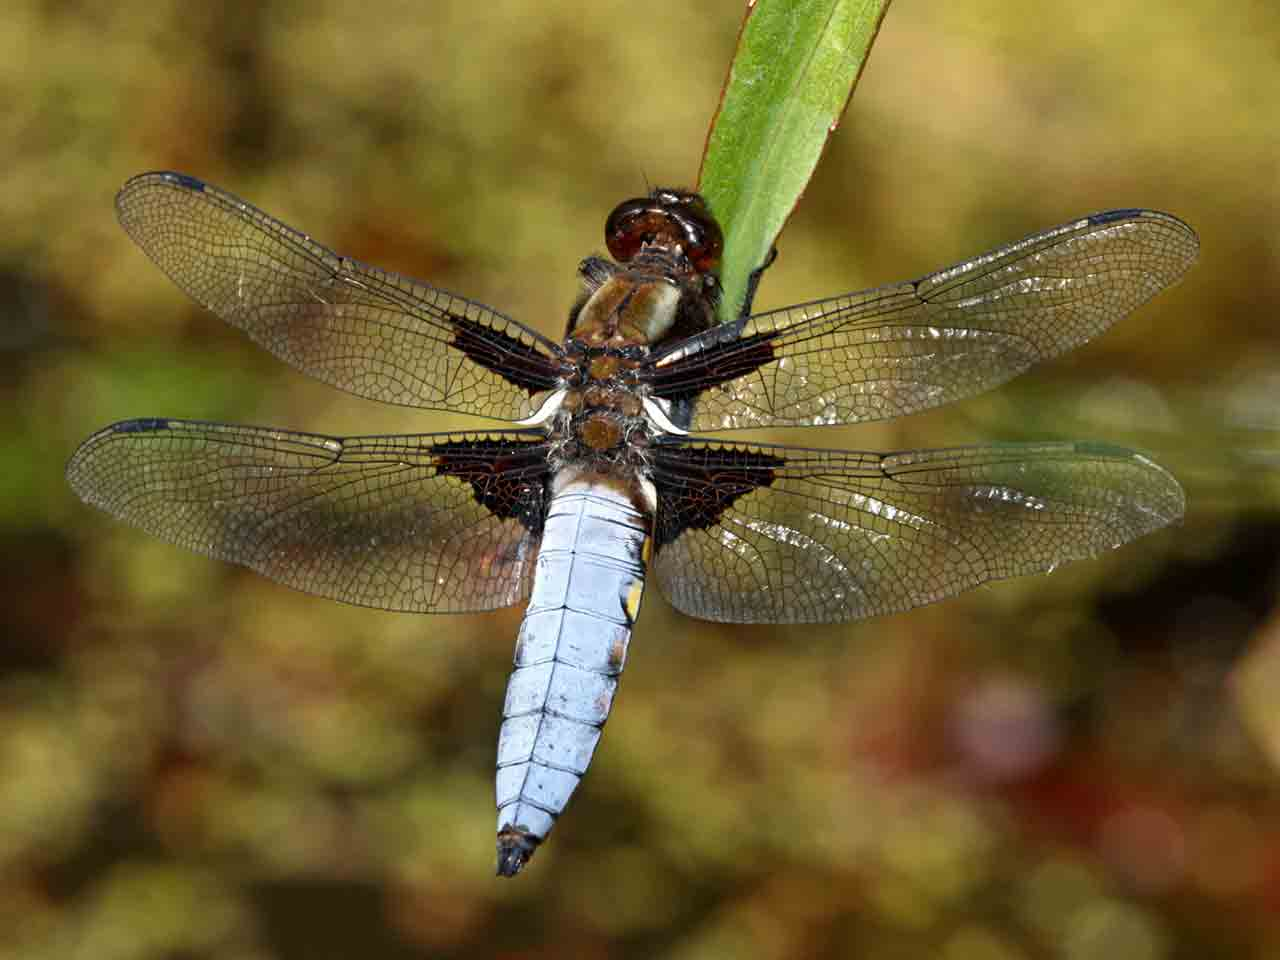 Broad-bodied dragonfly